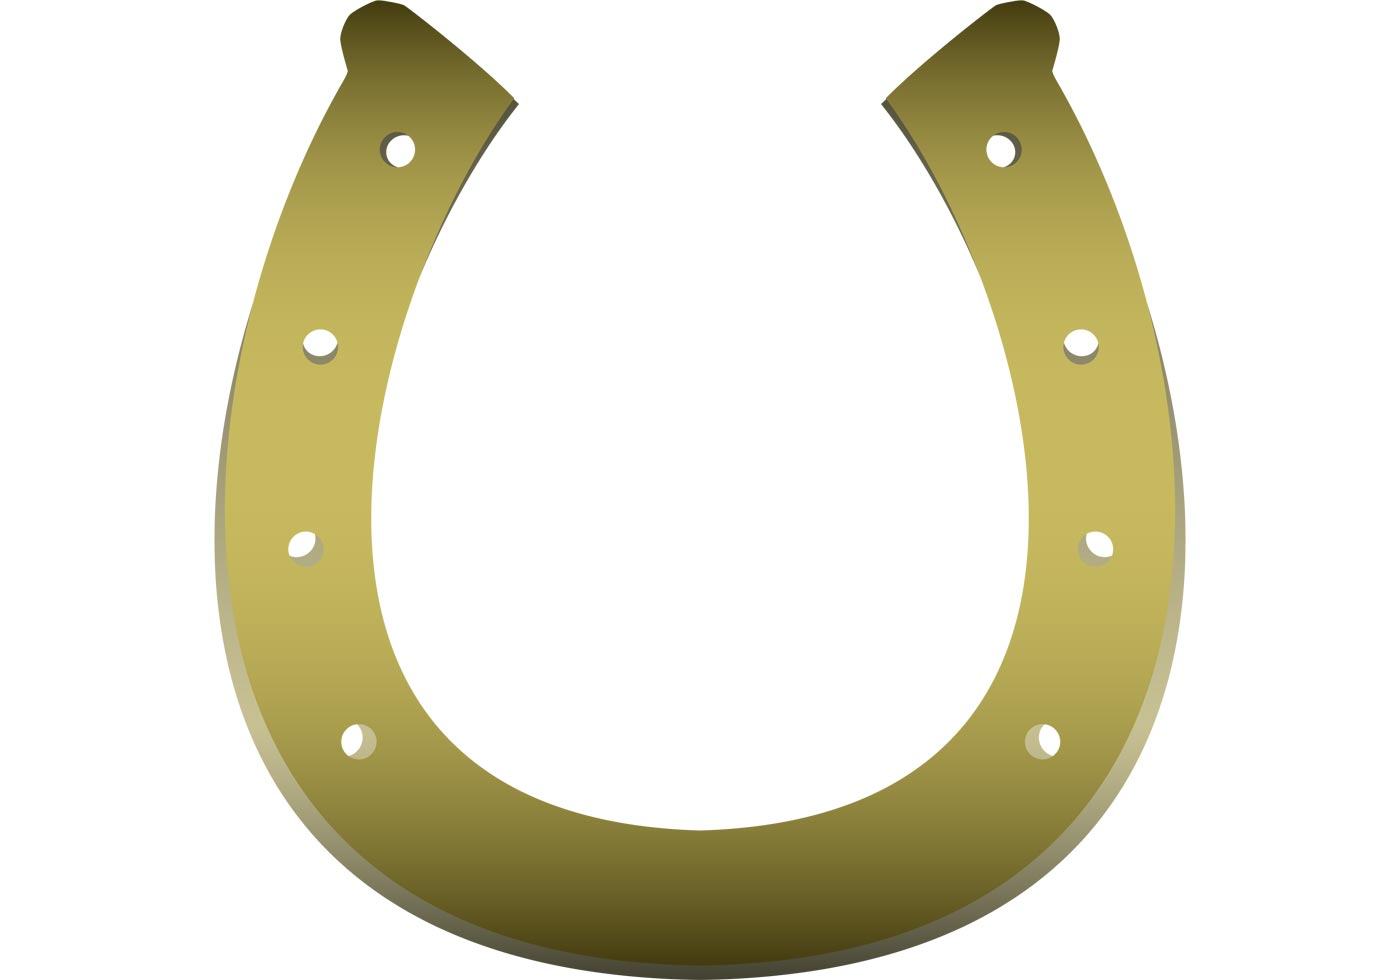 horseshoe free vector art  1202 free downloads Horseshoe Pitching Clip Art Horseshoe Tournament Clip Art